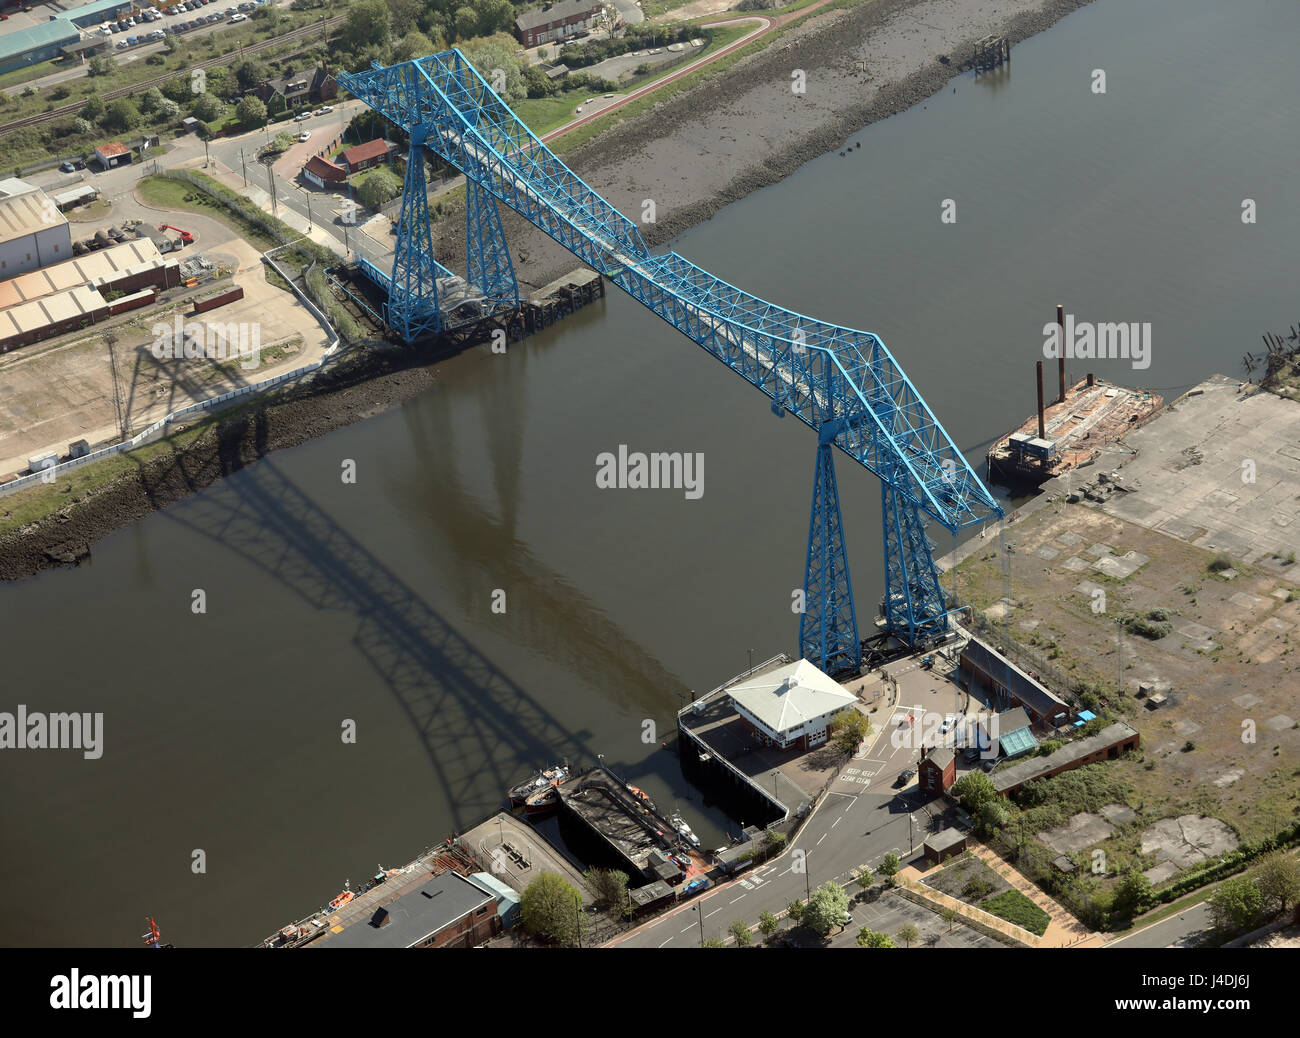 aerial view of the famous Middlesbrough Transporter Bridge, Teesside, UK - Stock Image